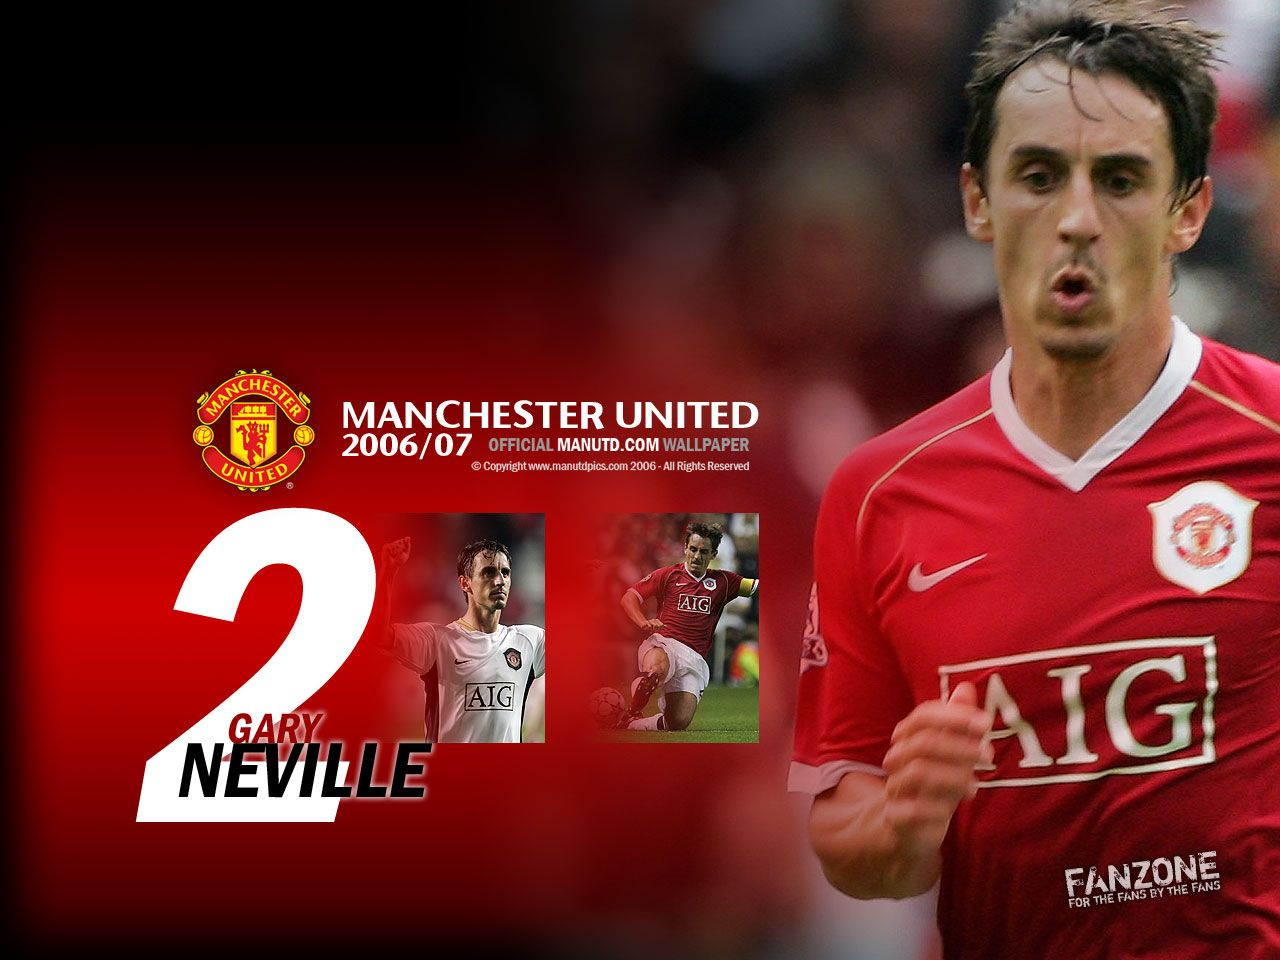 Gary Neville Famous Players Manchester United